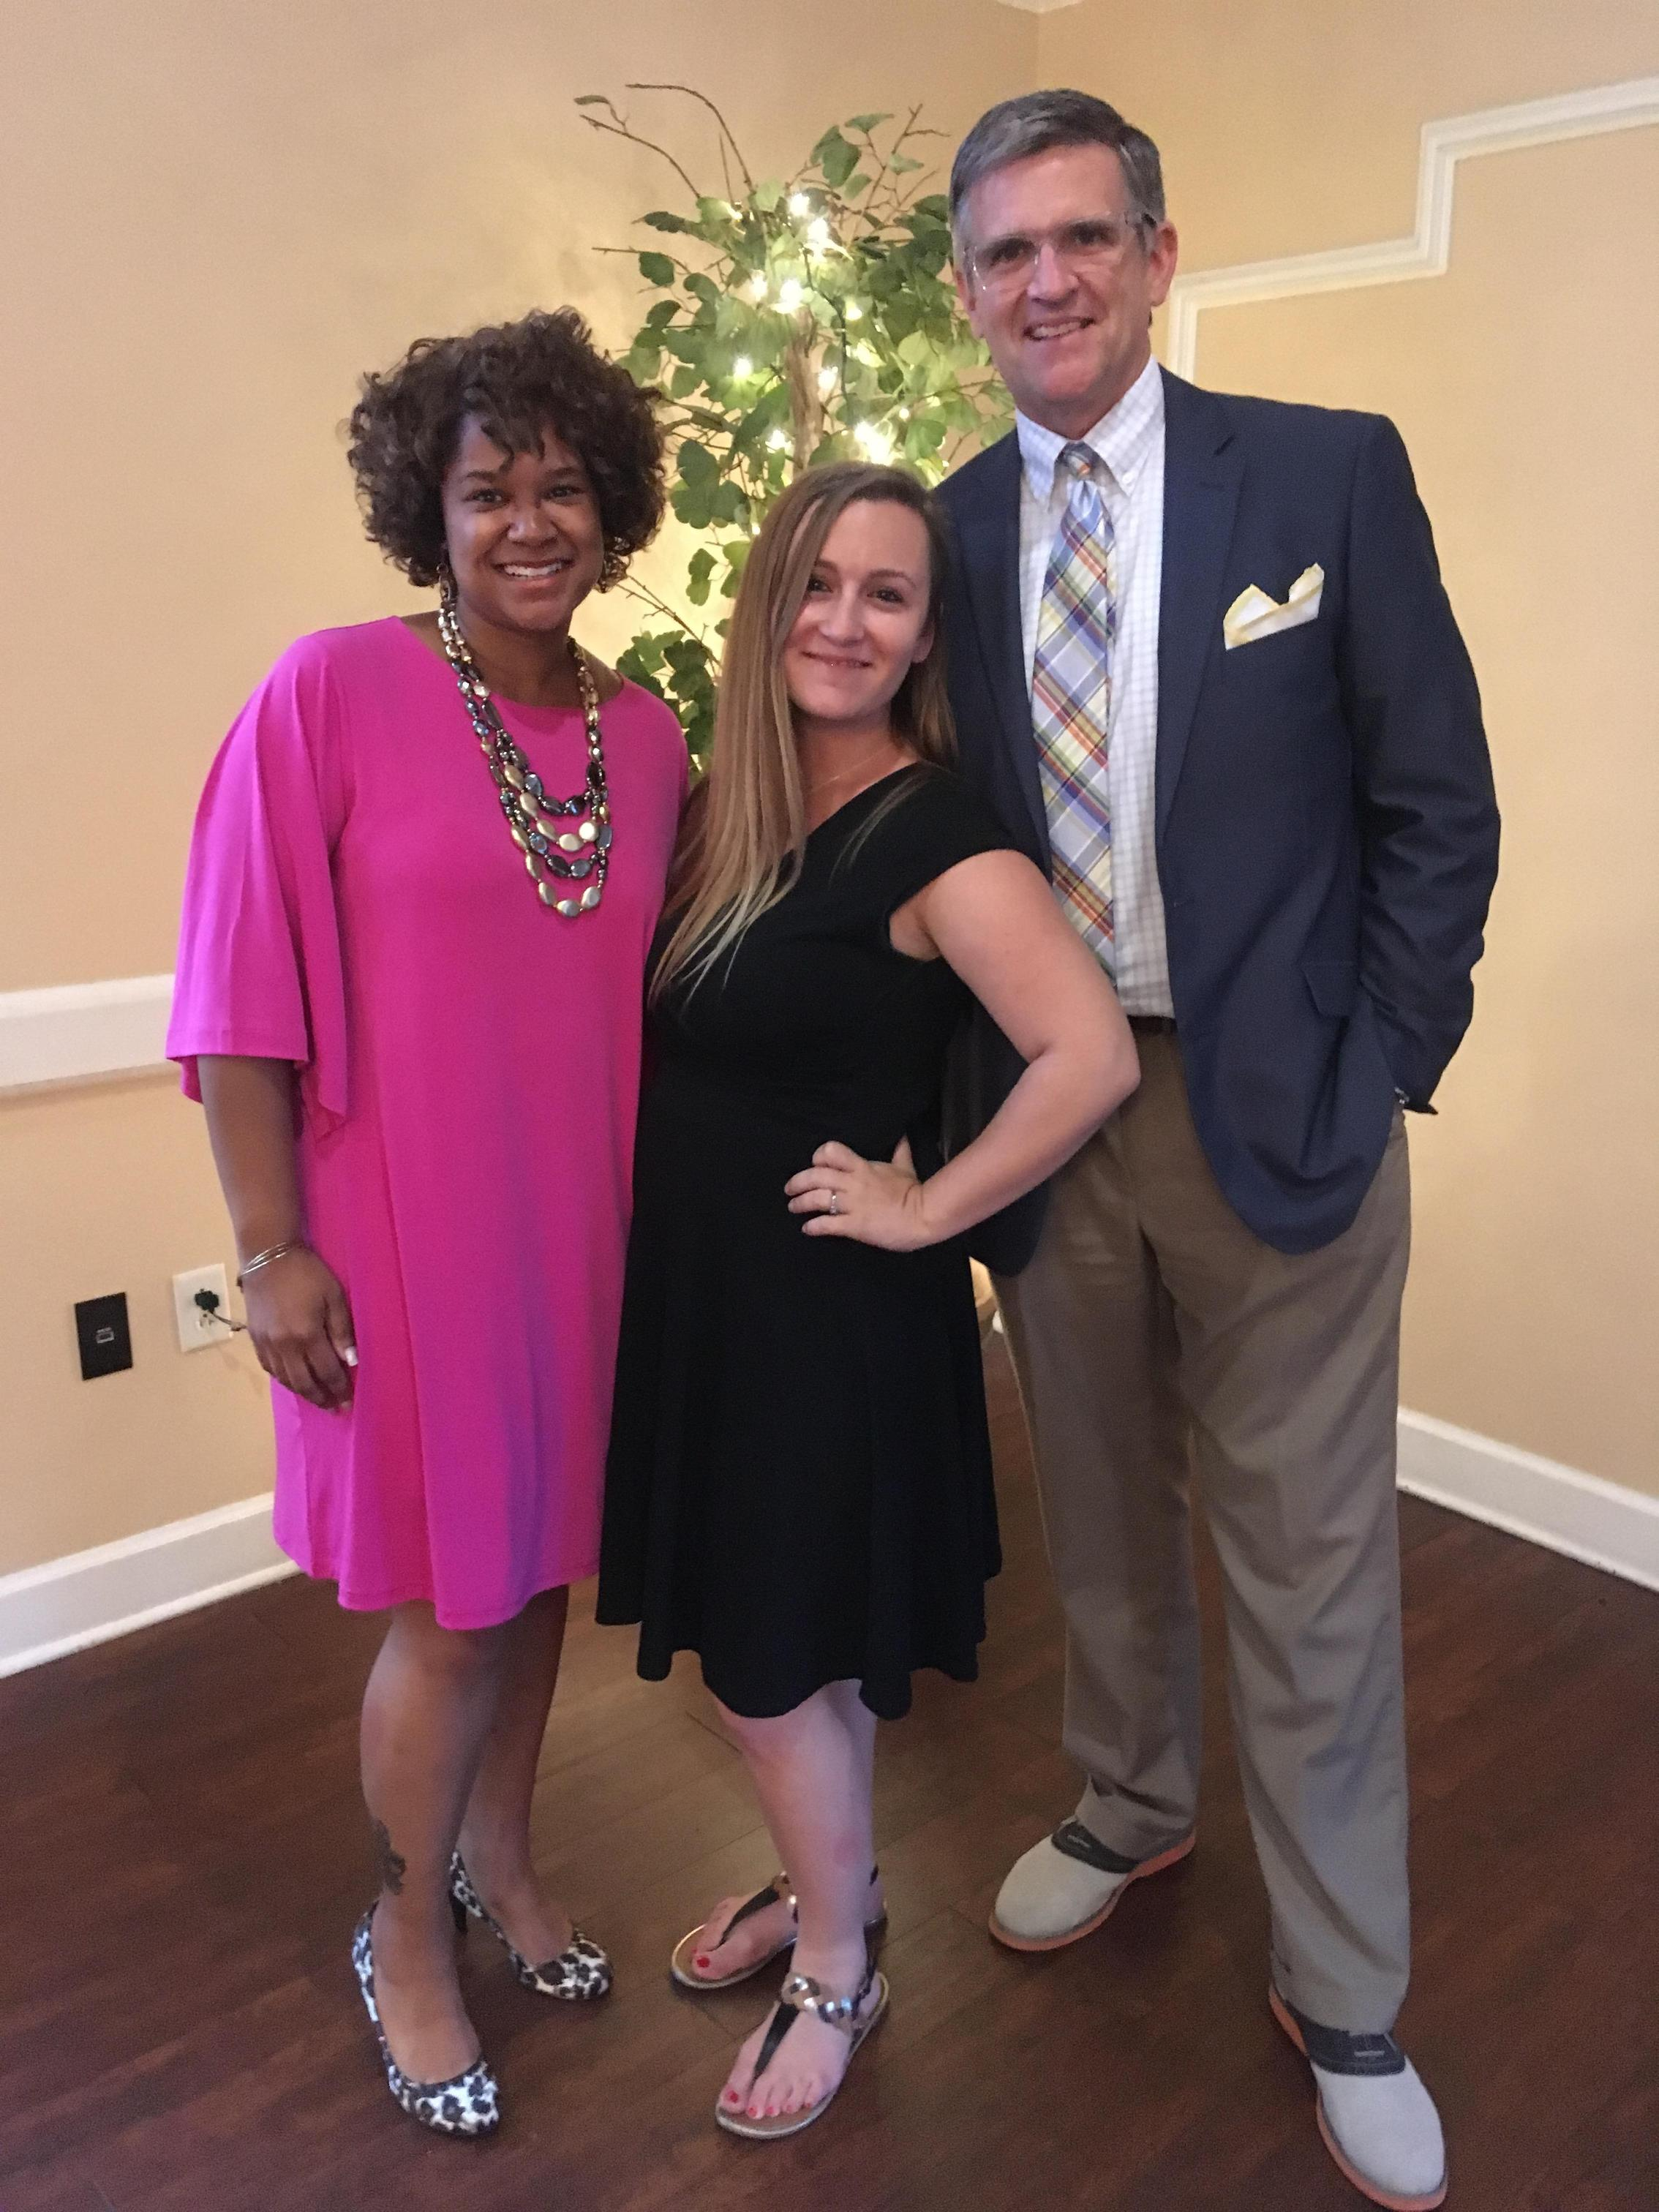 Mrs. Buggs and Mr. Brennan with Mrs. Chappell, teacher of the year 2019